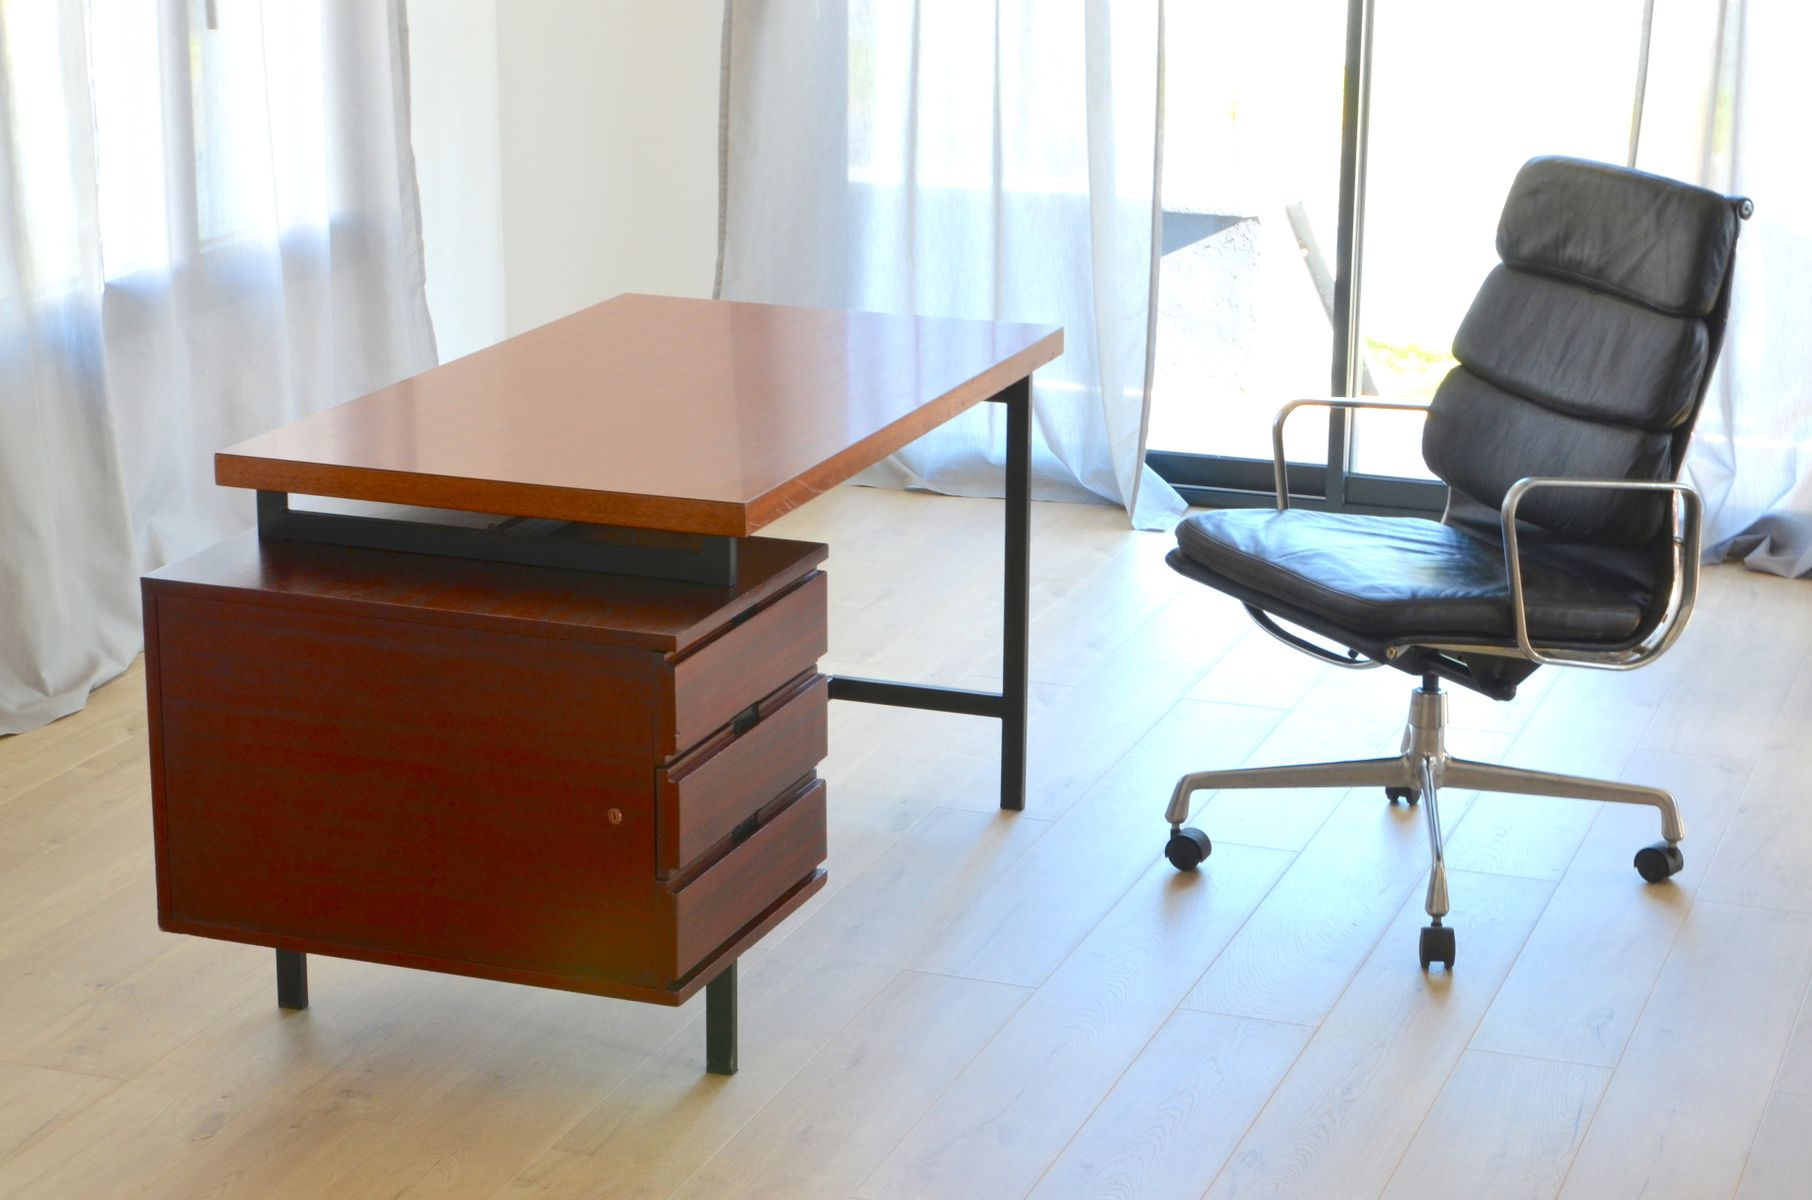 vintage ea219 office chair by charles eames for herman